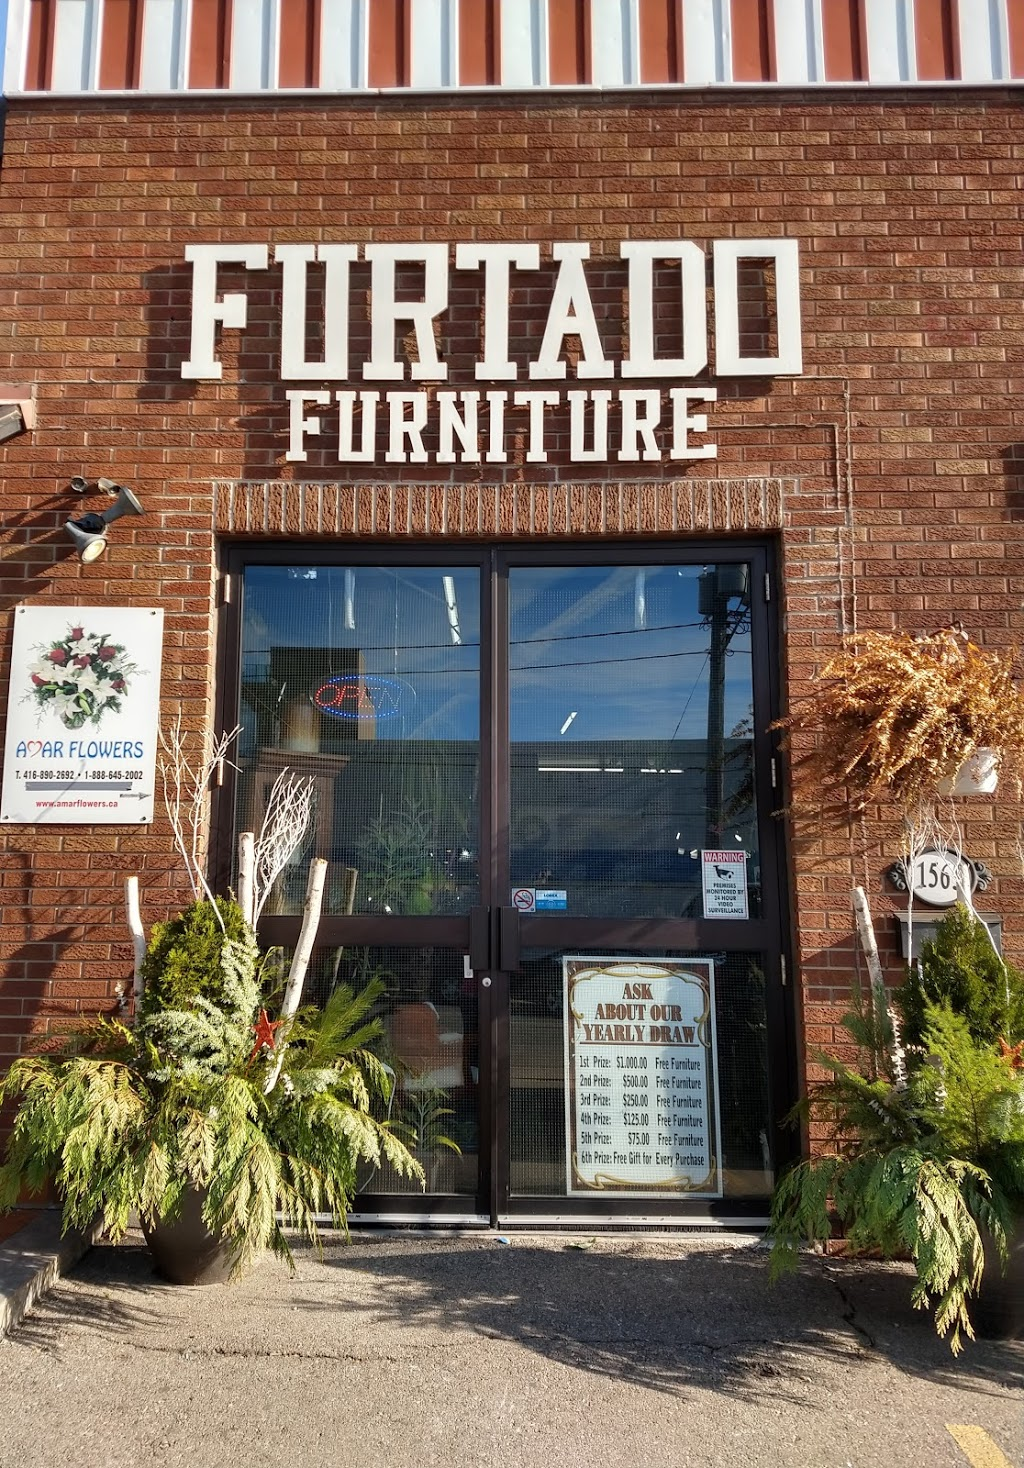 Furtado Furniture | furniture store | 1565 Keele St, York, ON M6N 3G1, Canada | 4166450180 OR +1 416-645-0180